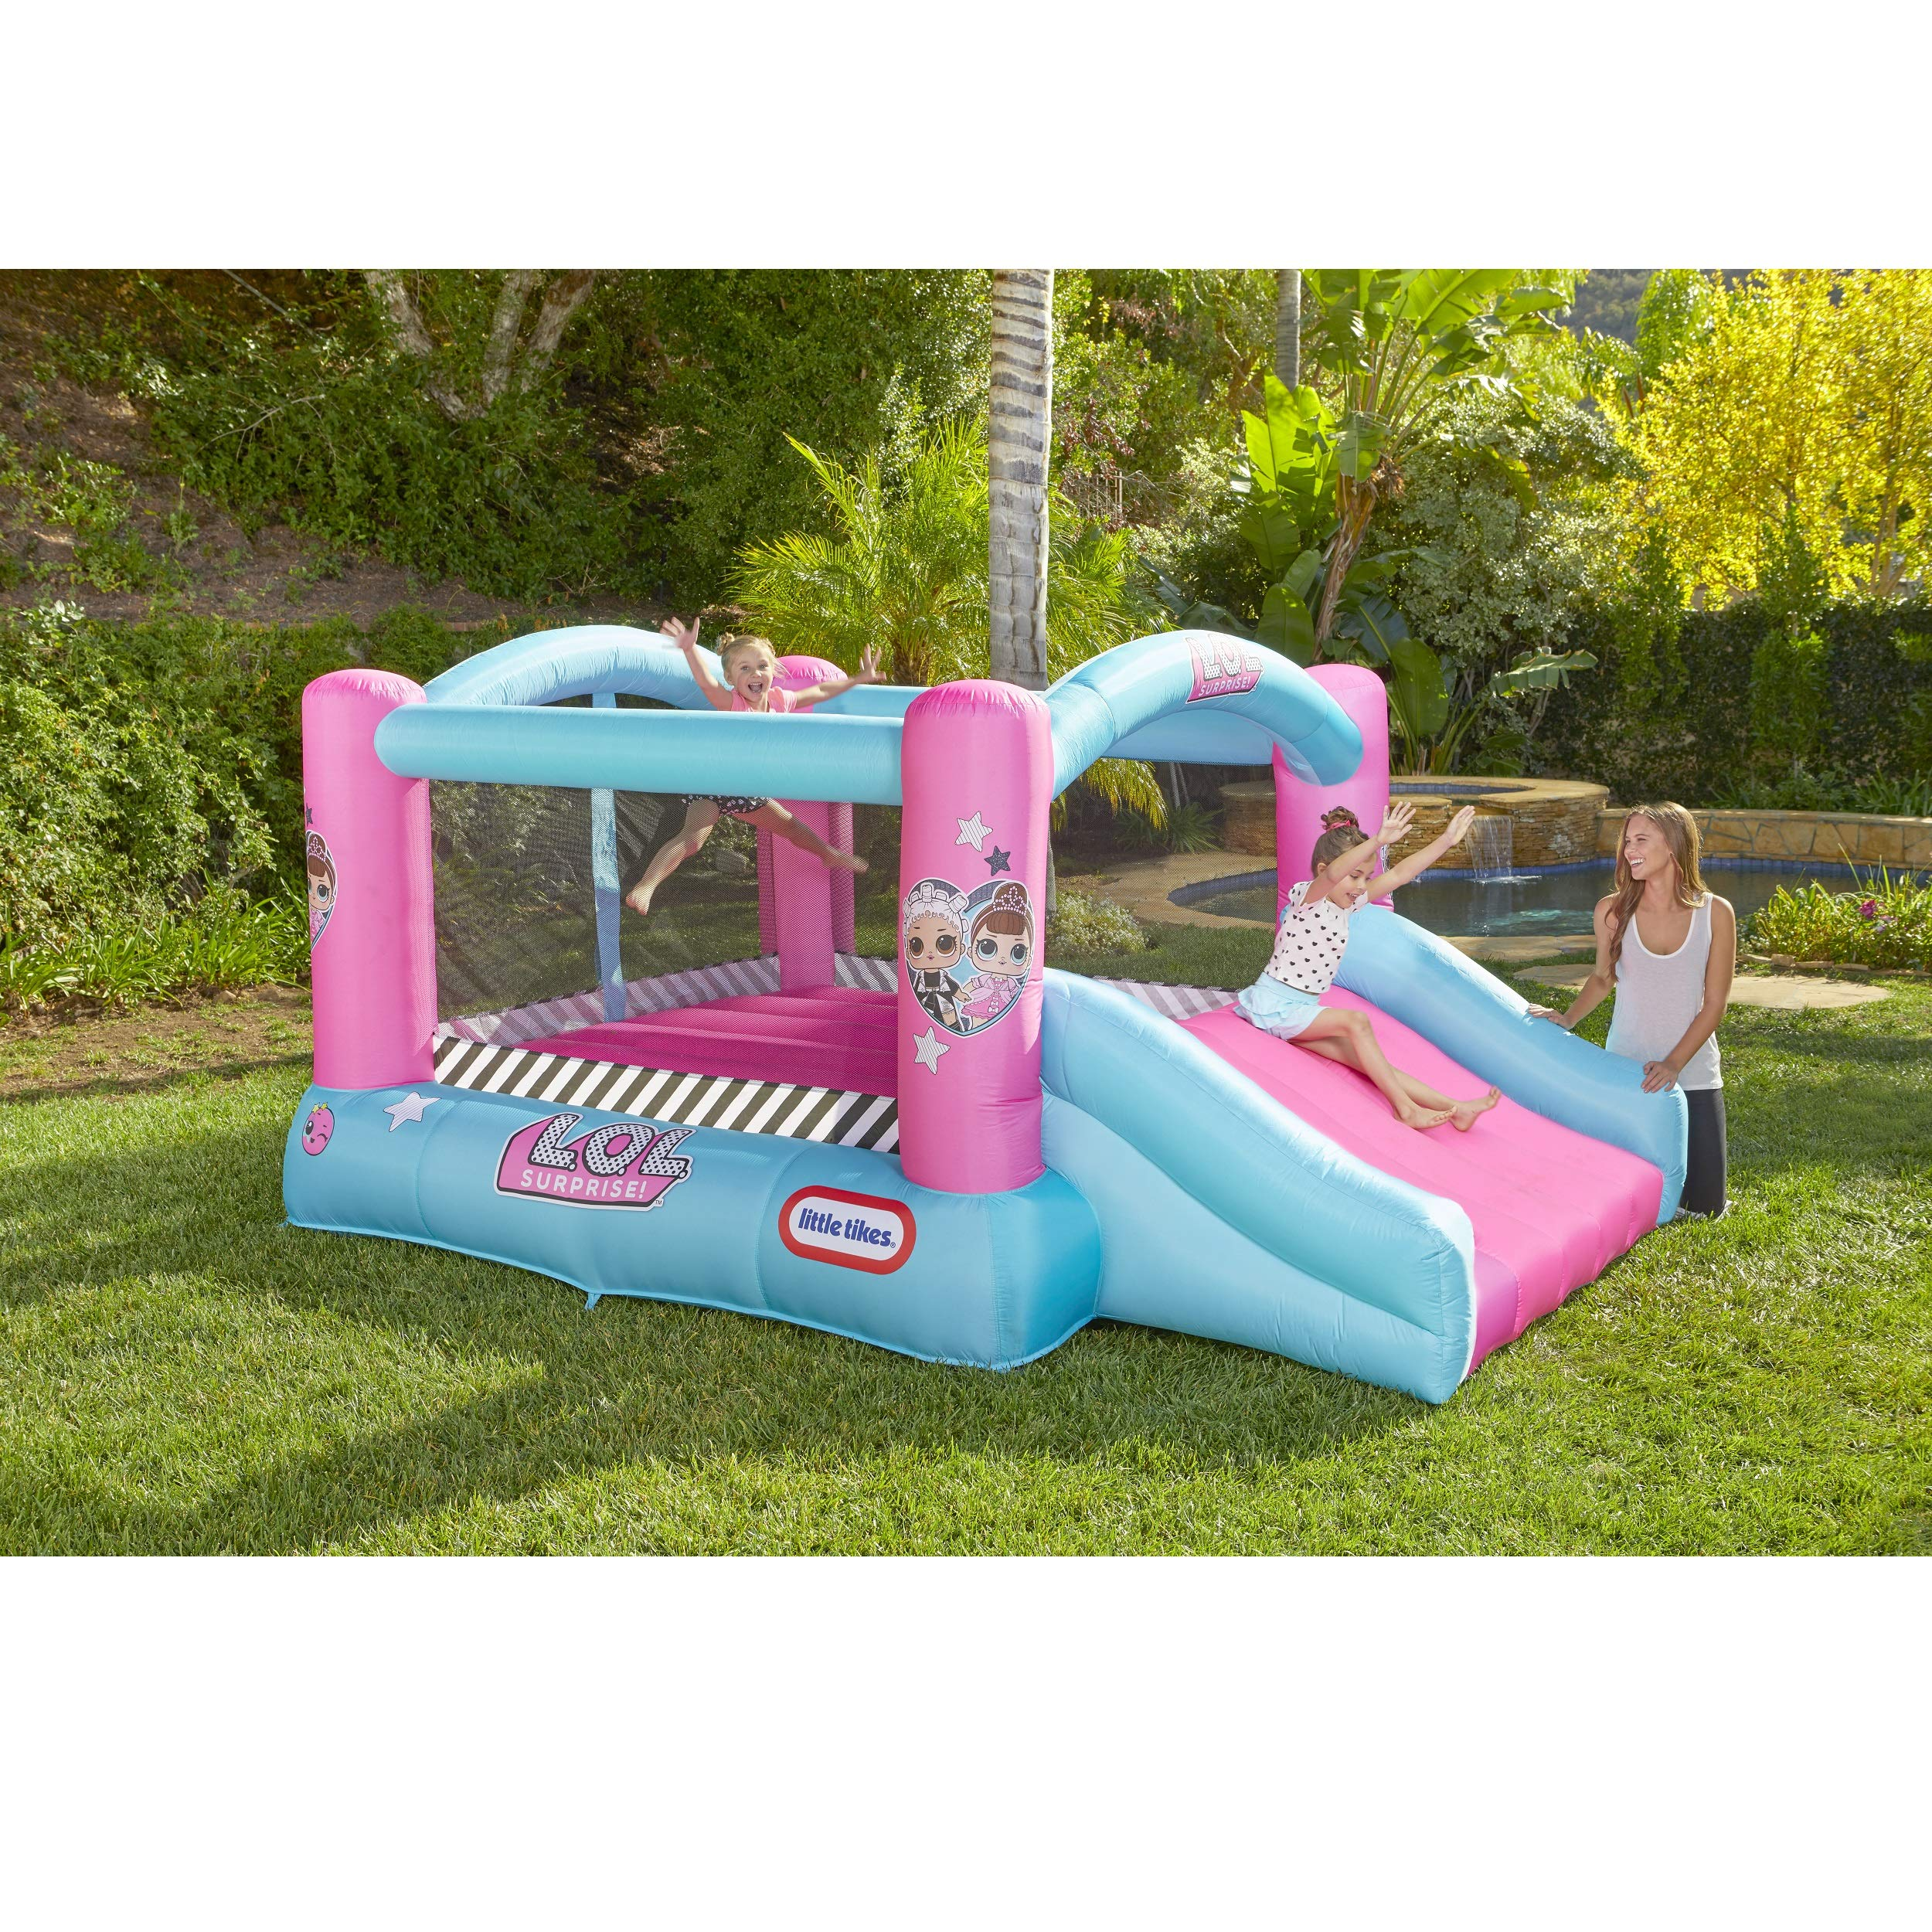 L.O.L. Surprise Jump 'n Slide Inflatable Bounce House with Blower by Little Tikes (Image #2)